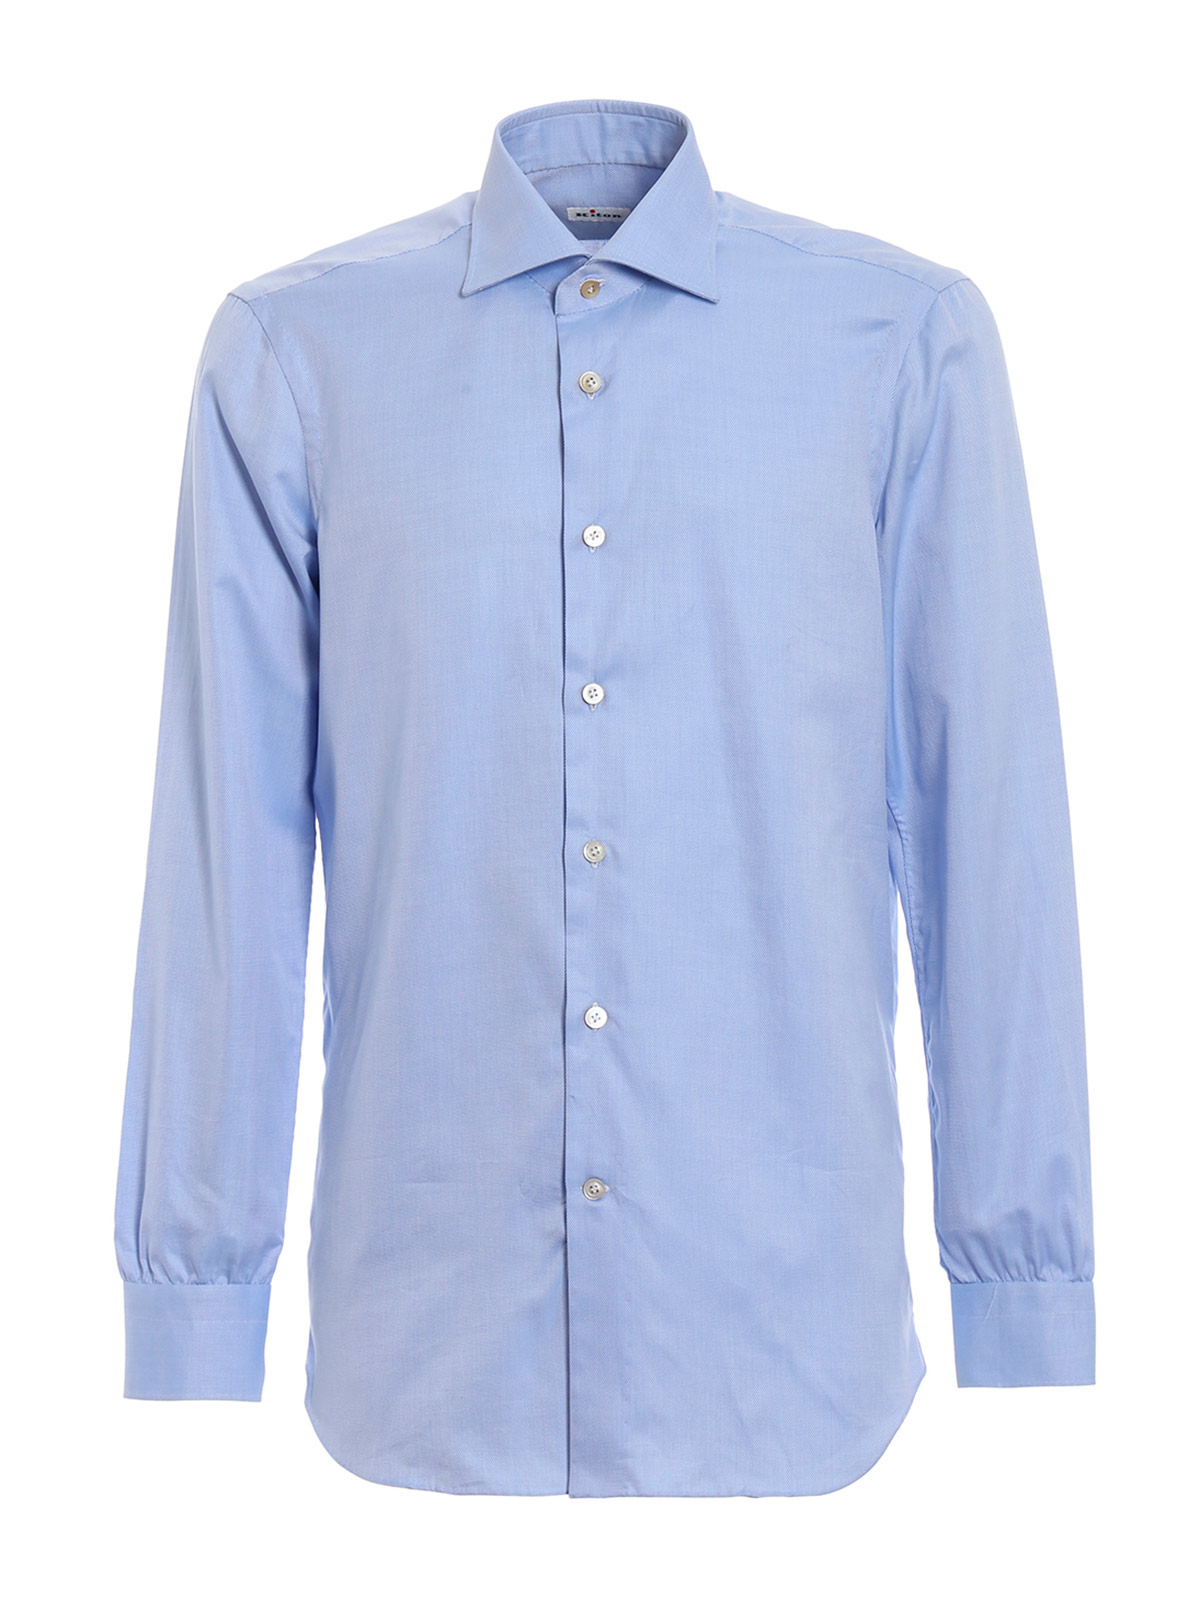 Picture of KITON | Men's Jacquard Cotton Shirt